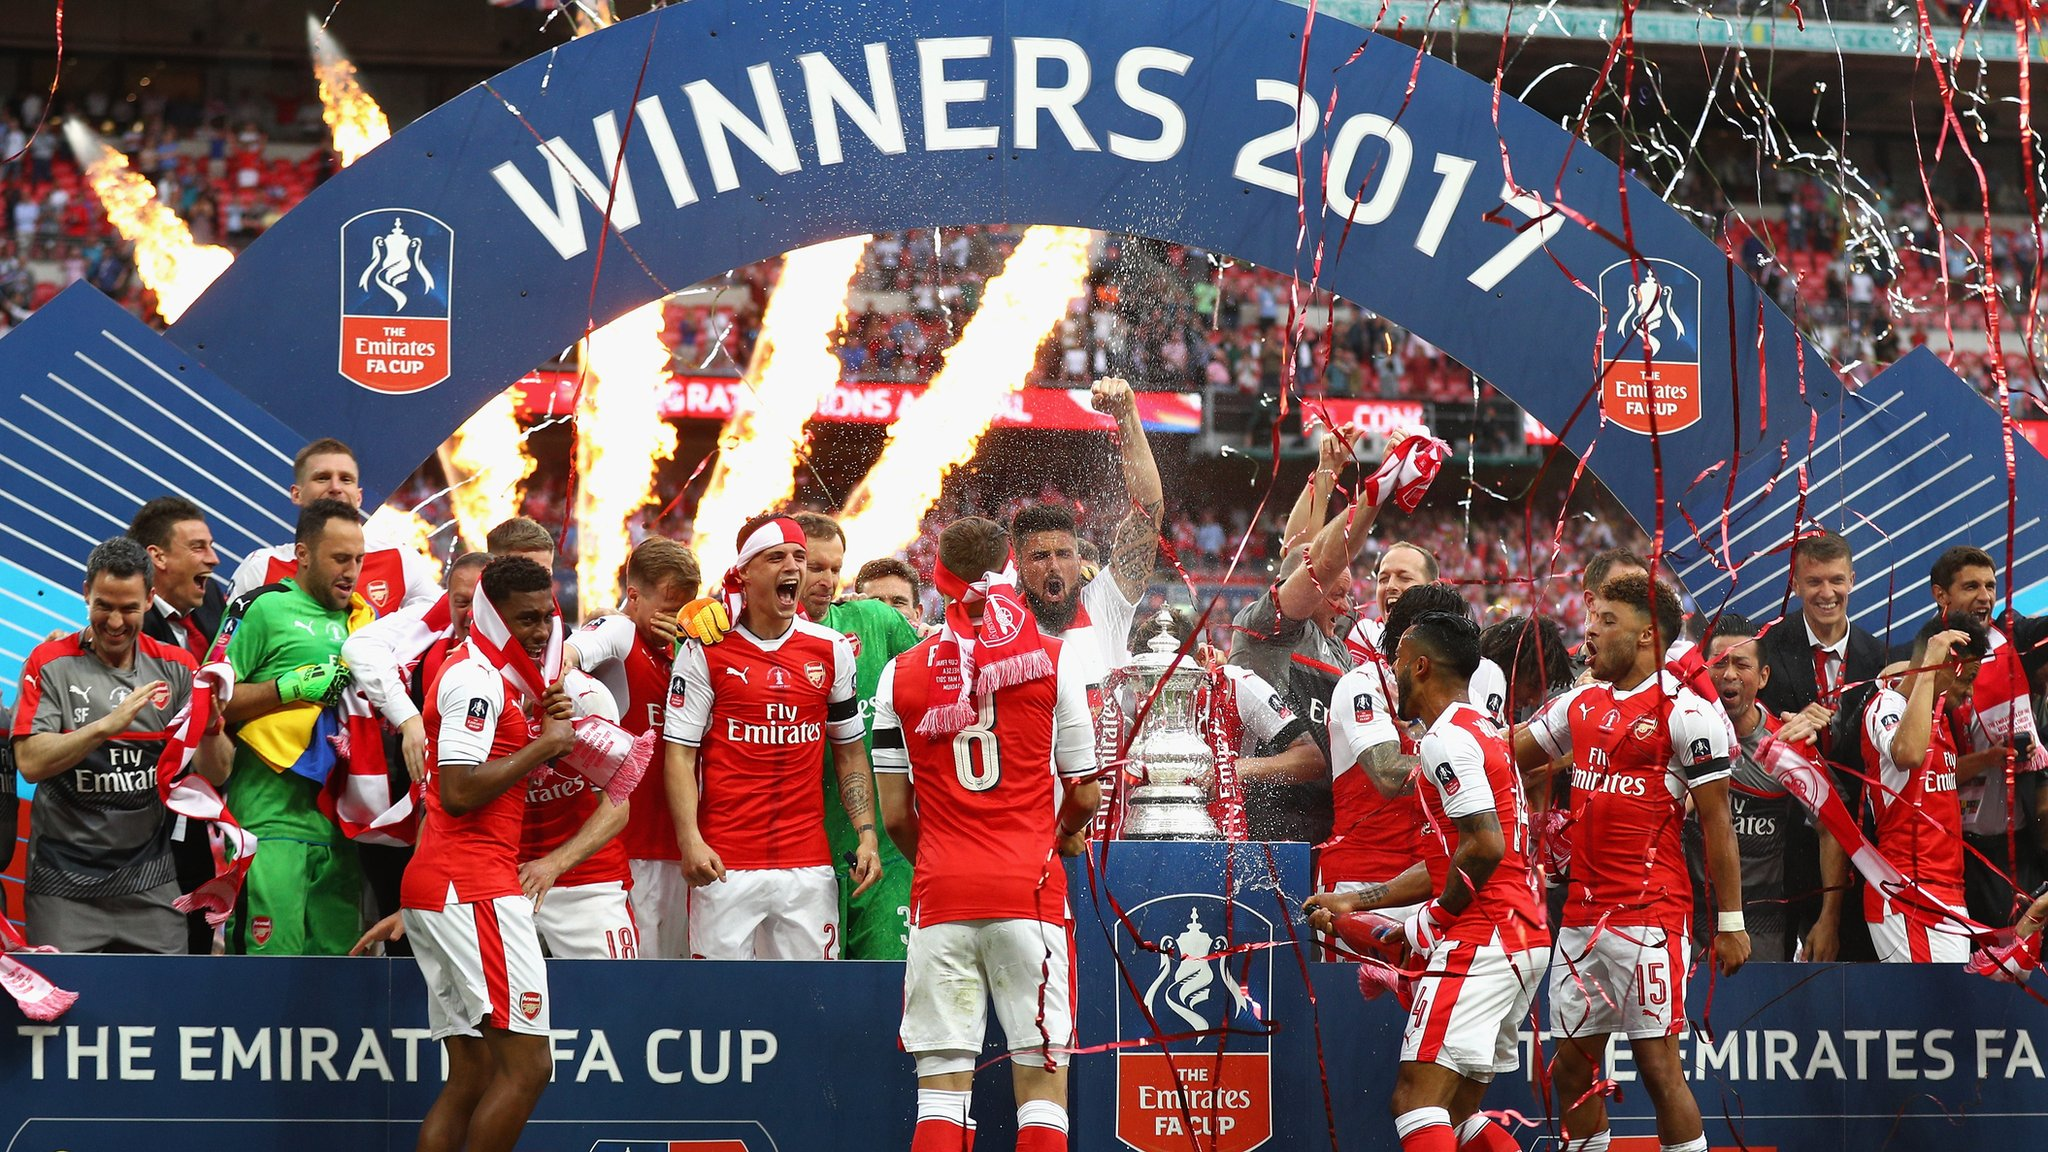 Arsenal defeat Chelsea in FA Cup